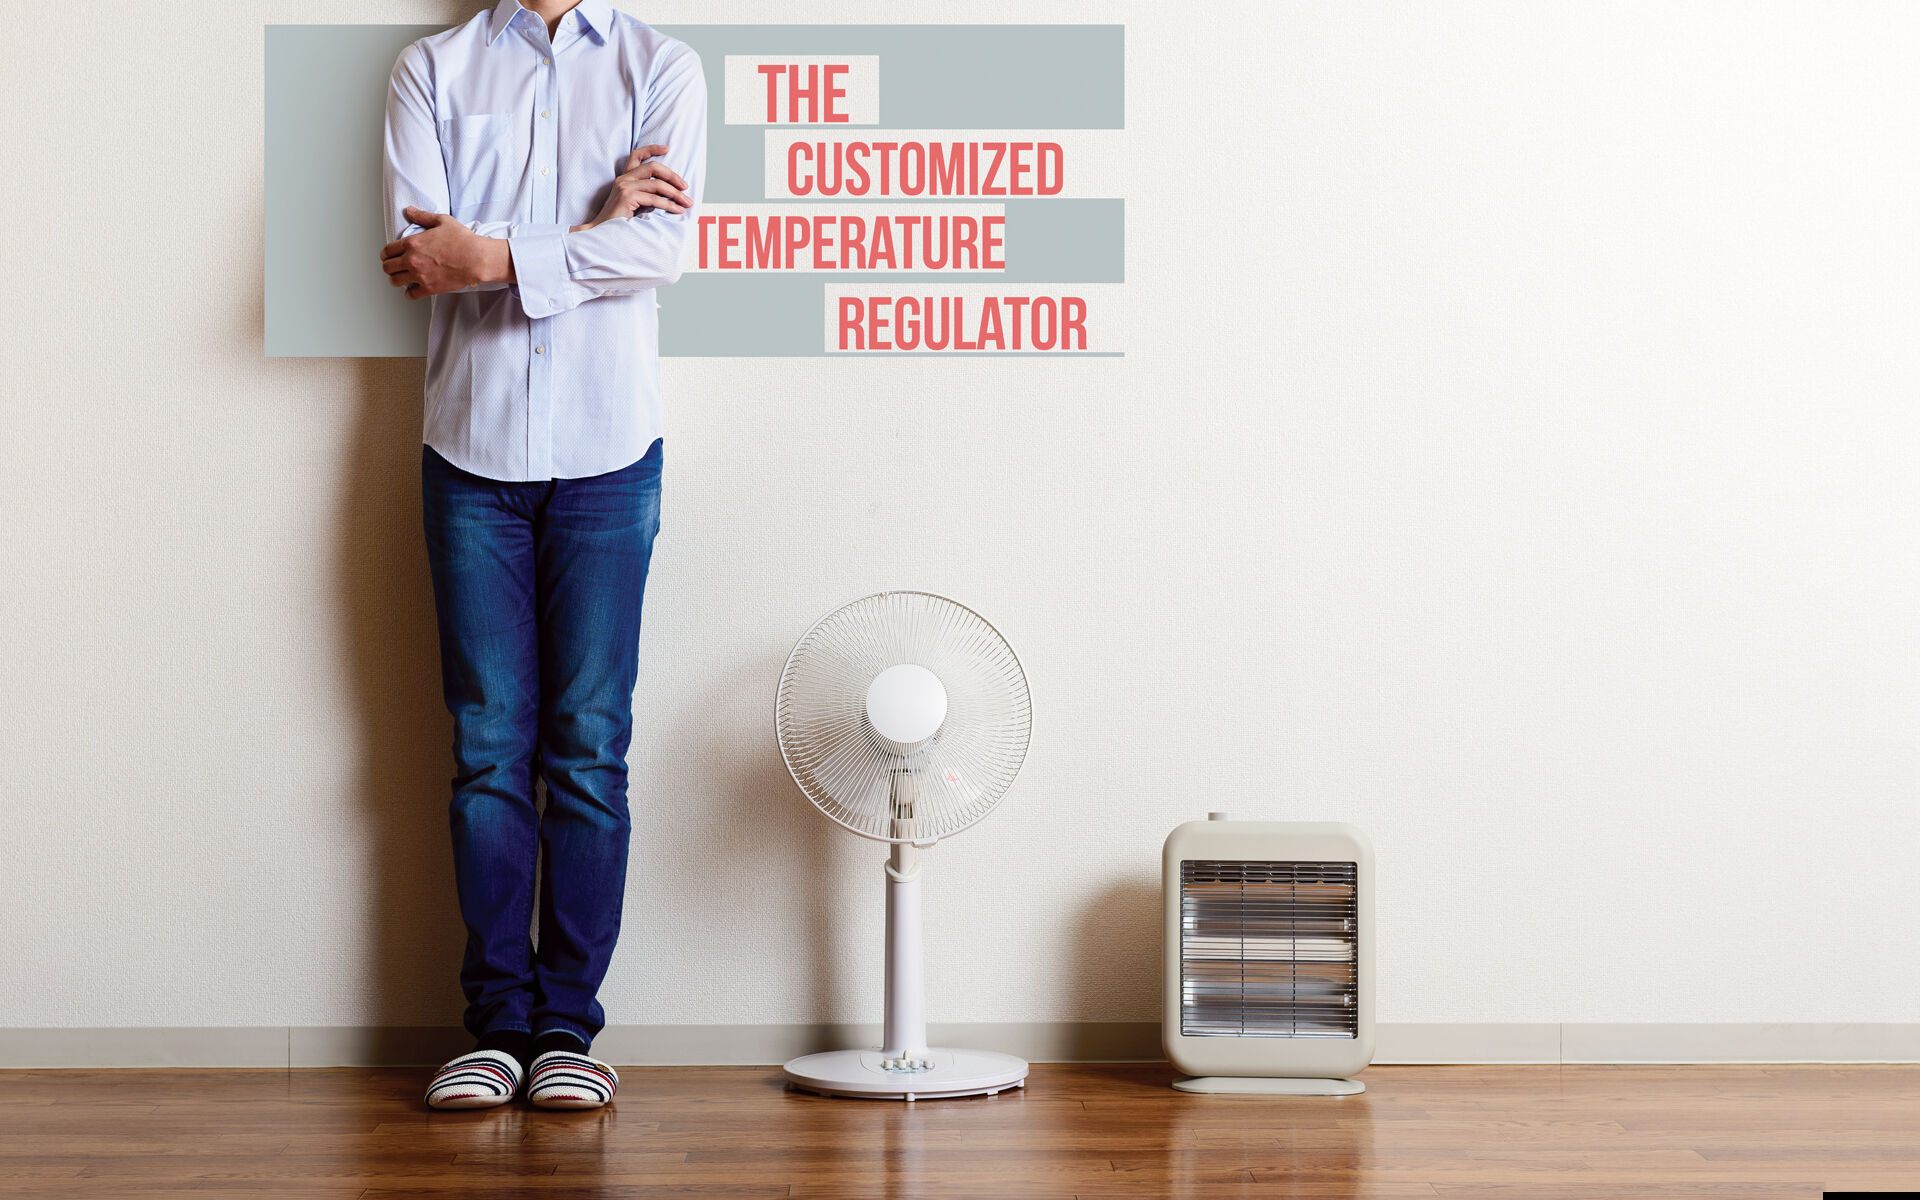 The Customized Temperature Regulator